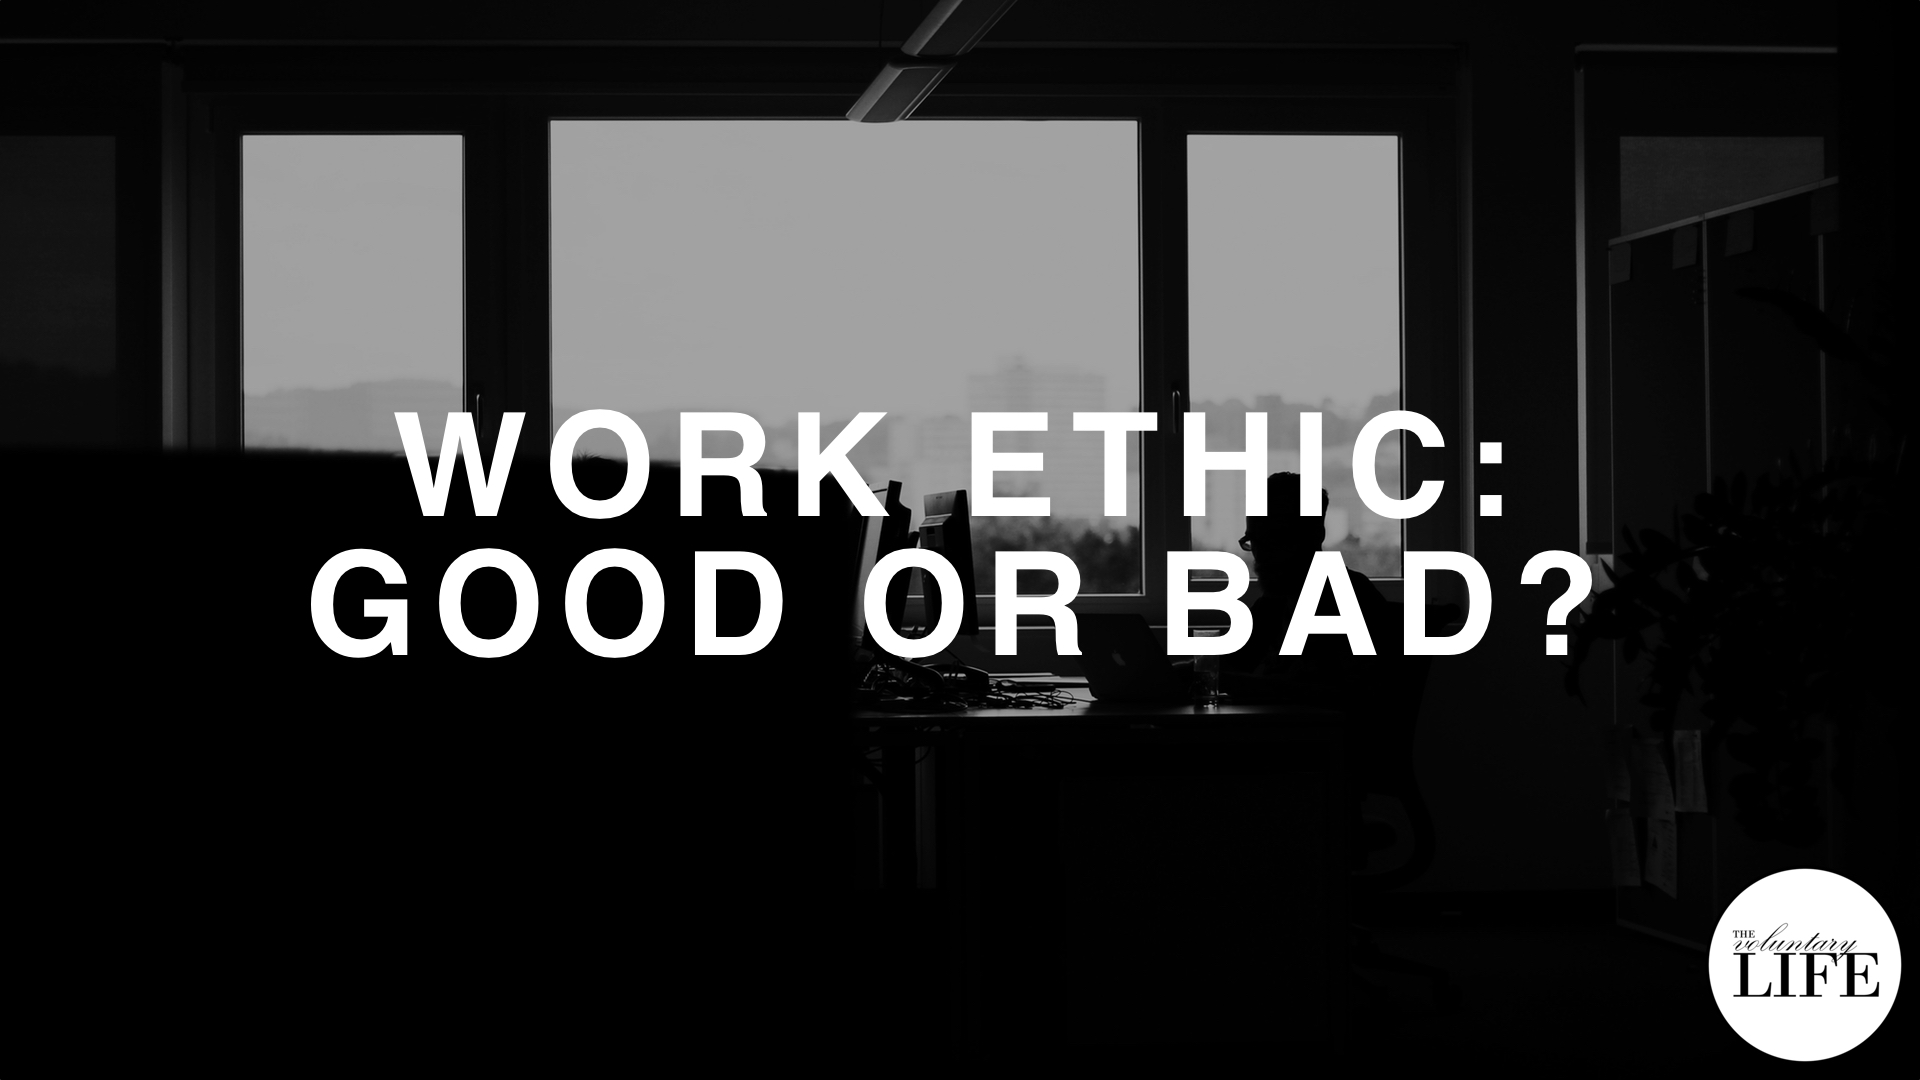 123 Work Ethic: Good or Bad?